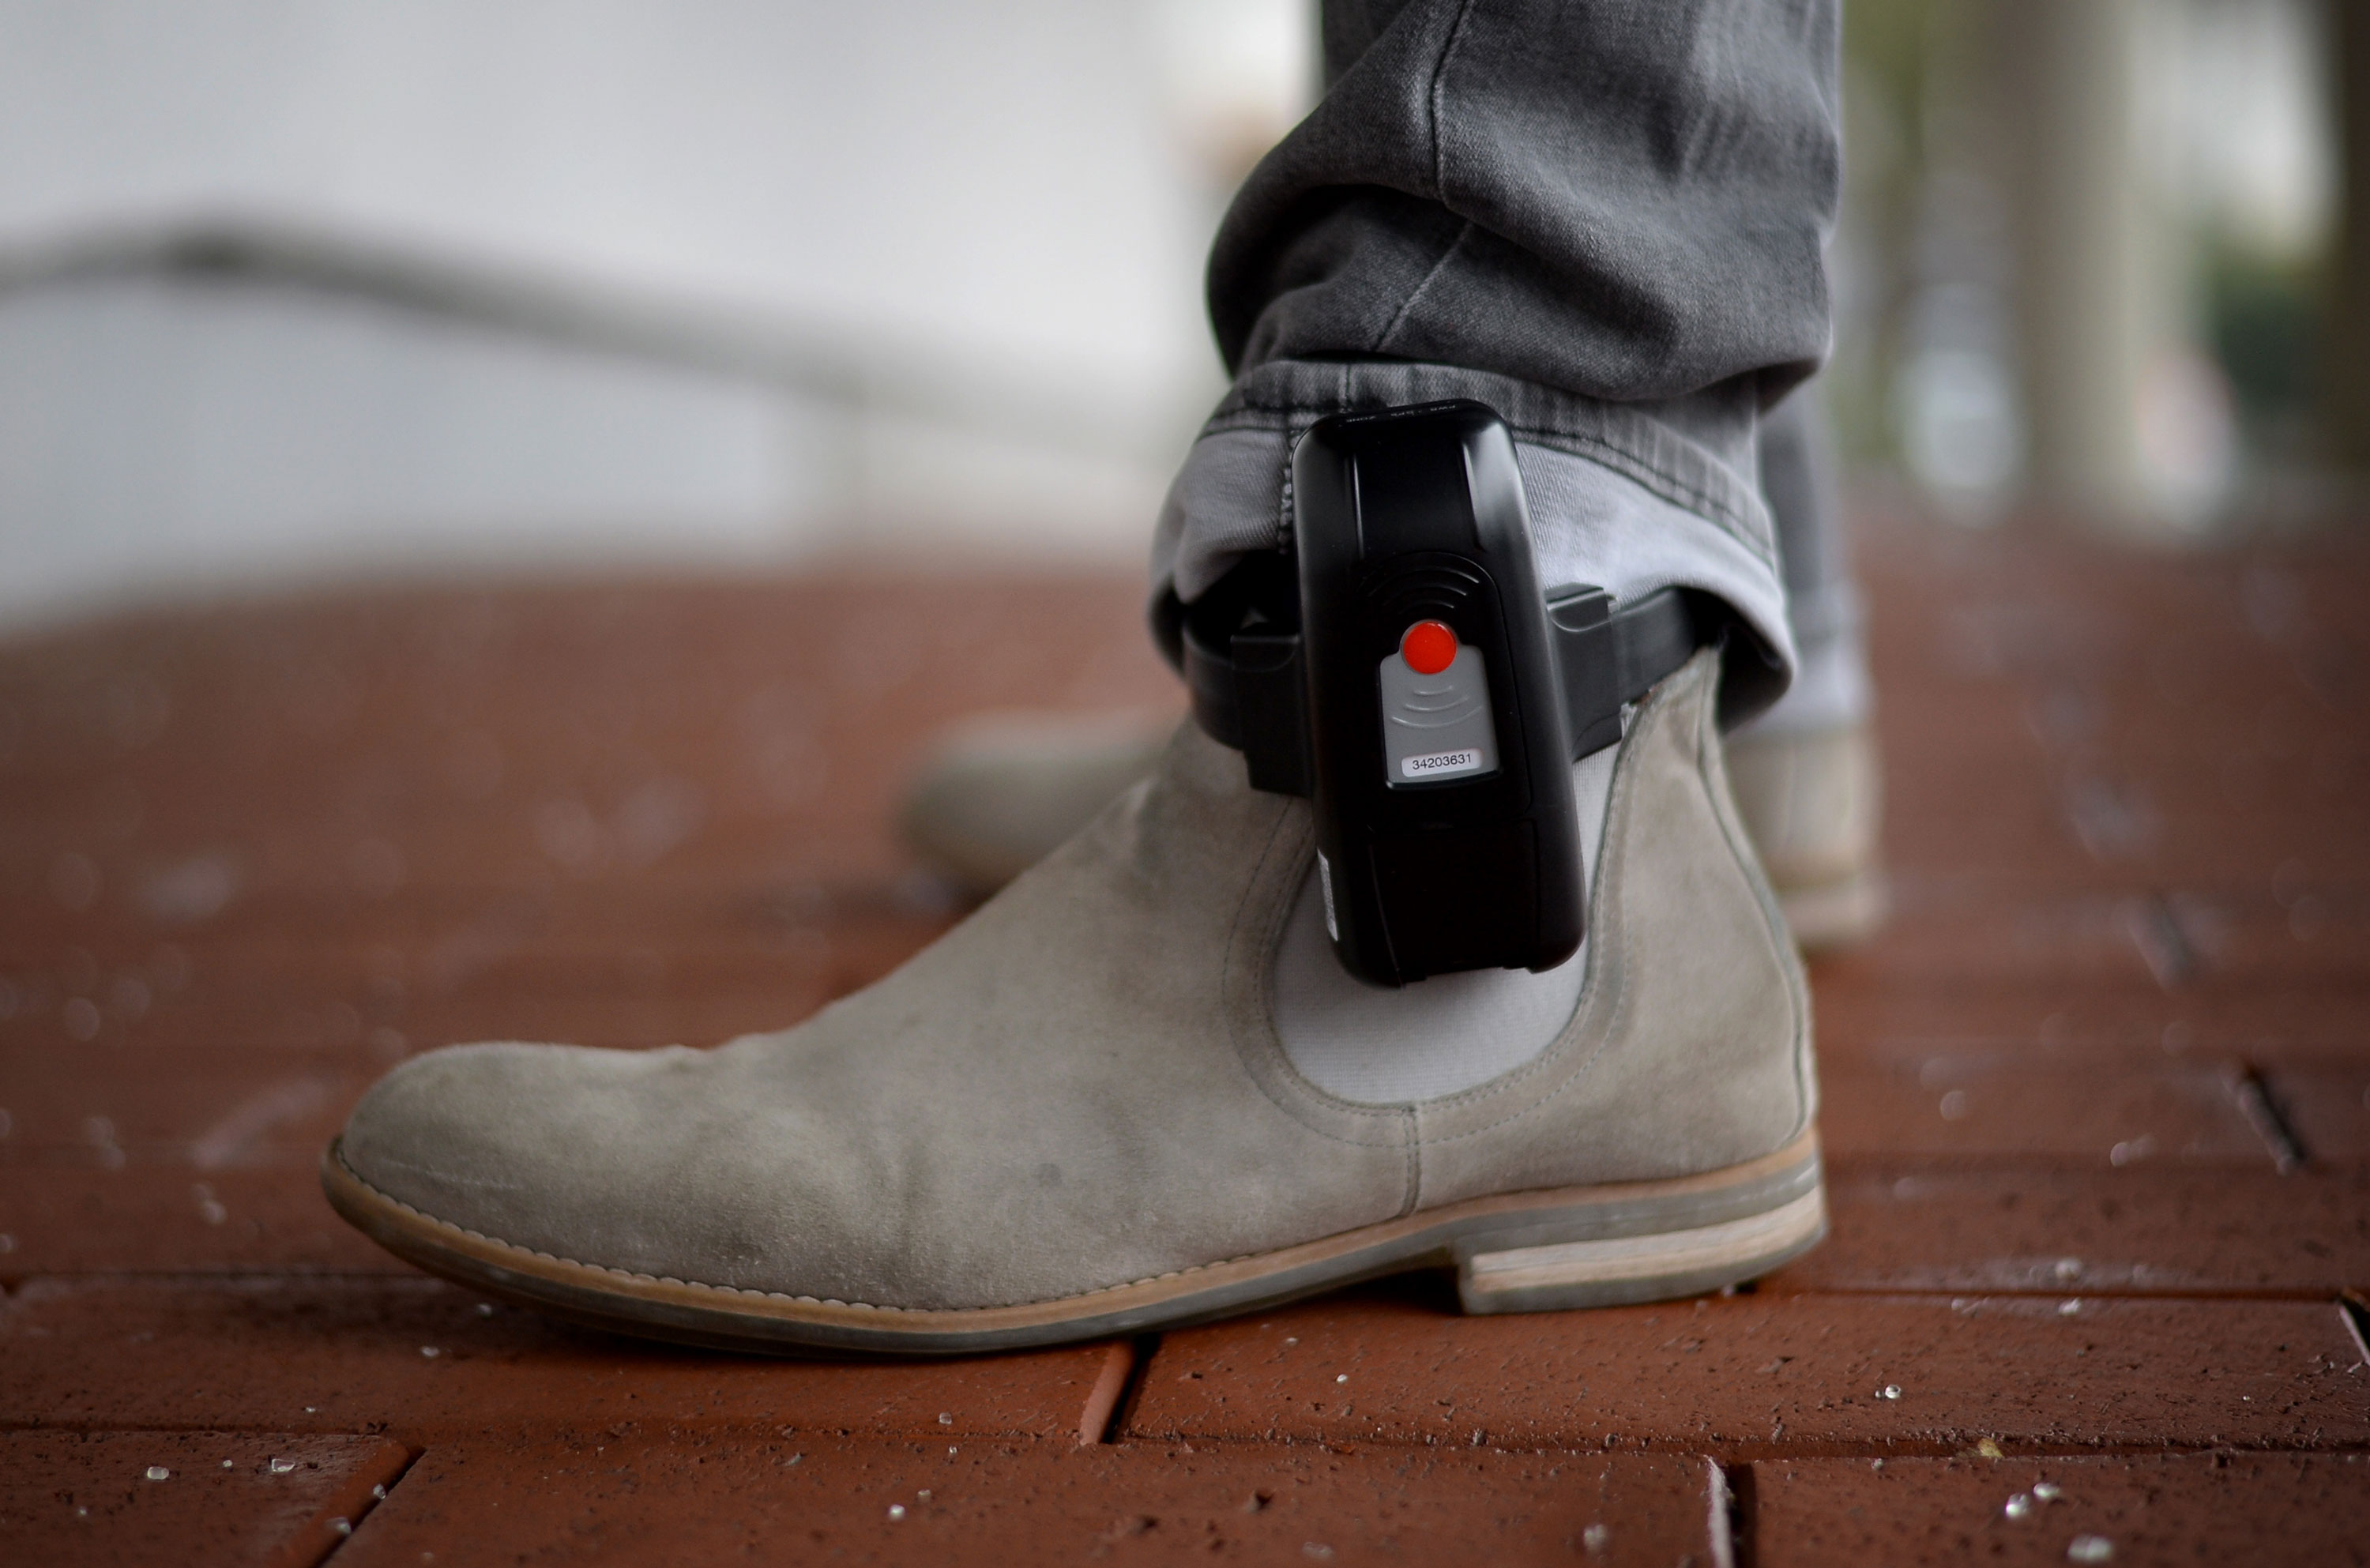 Ankle monitors ordered for Louisville, Kentucky residents exposed to Covid-19 who refuse to stay home